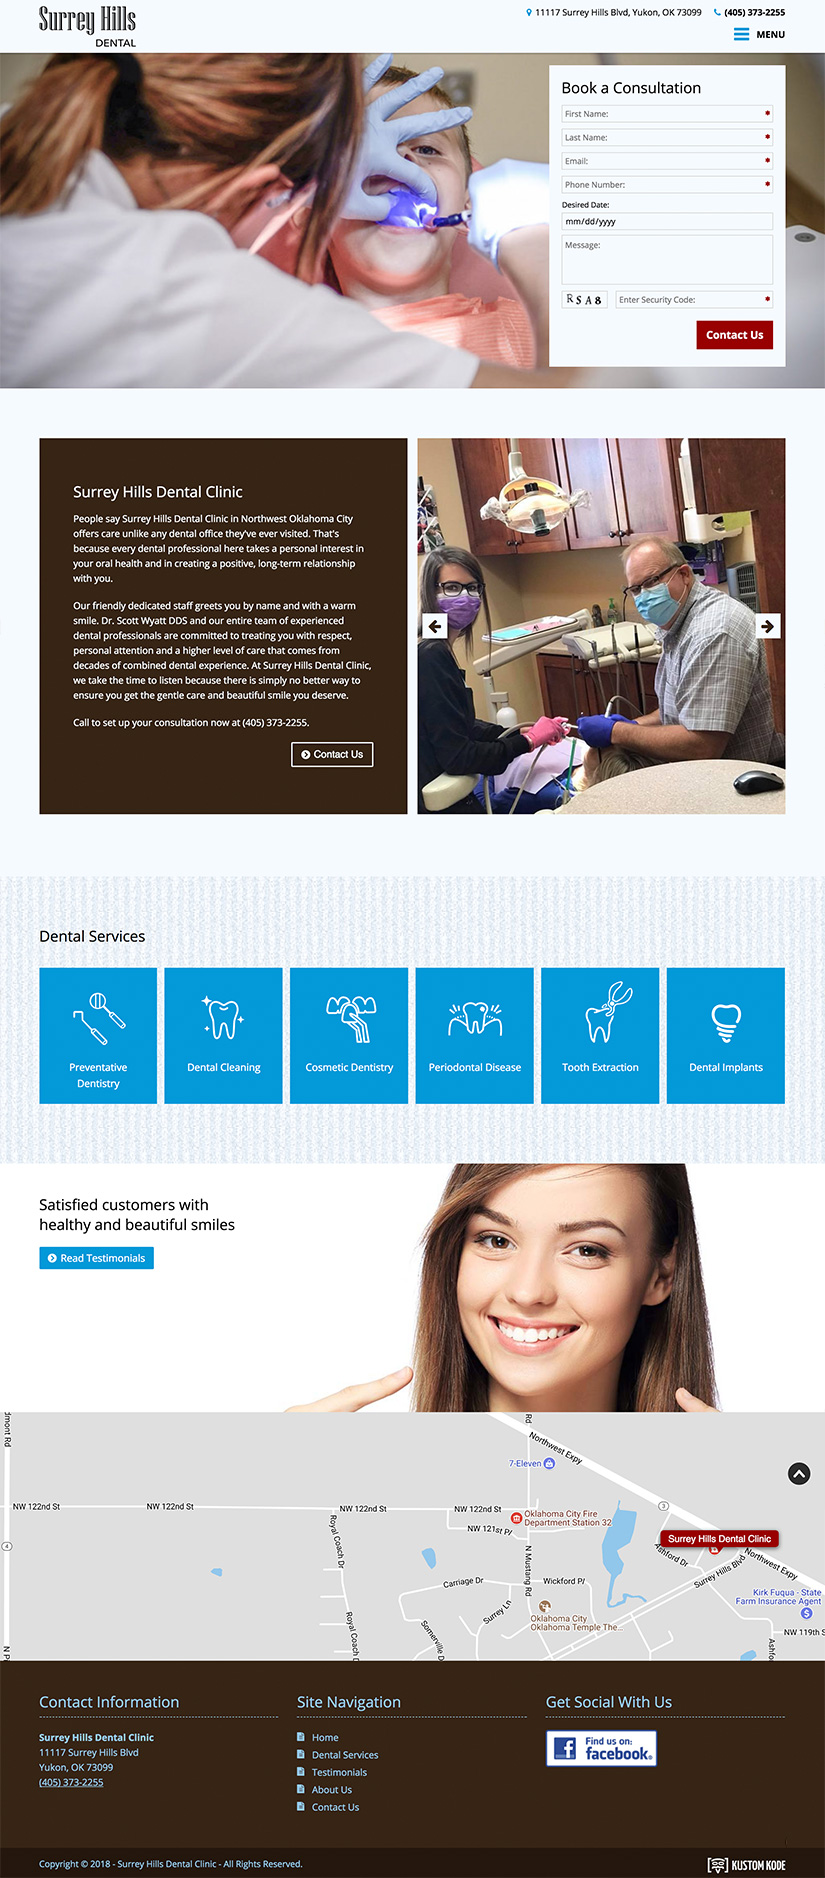 Web Design for a Dental Clinic